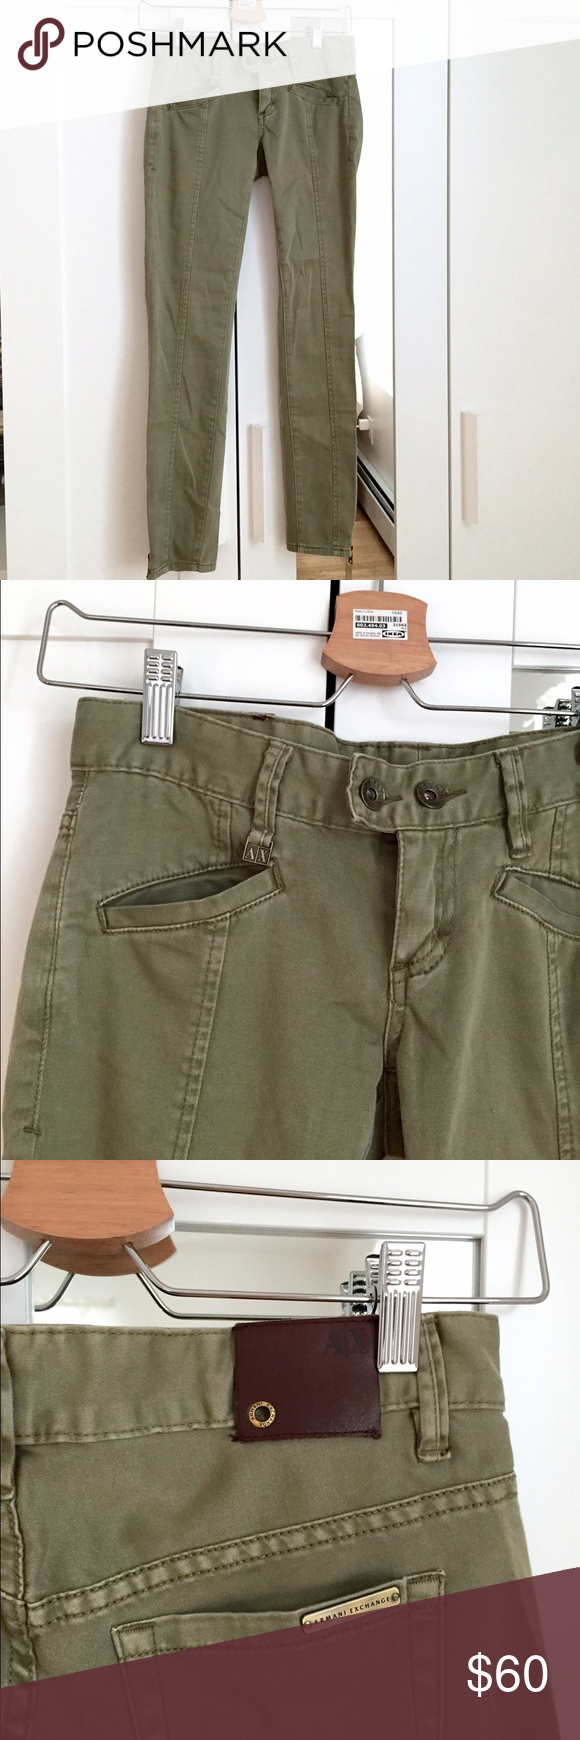 Armani exchange olive jeggings Super soft material. Never worn!! Ankle zippers. Great for everyday wear. Armani Exchange Jeans Straight Leg